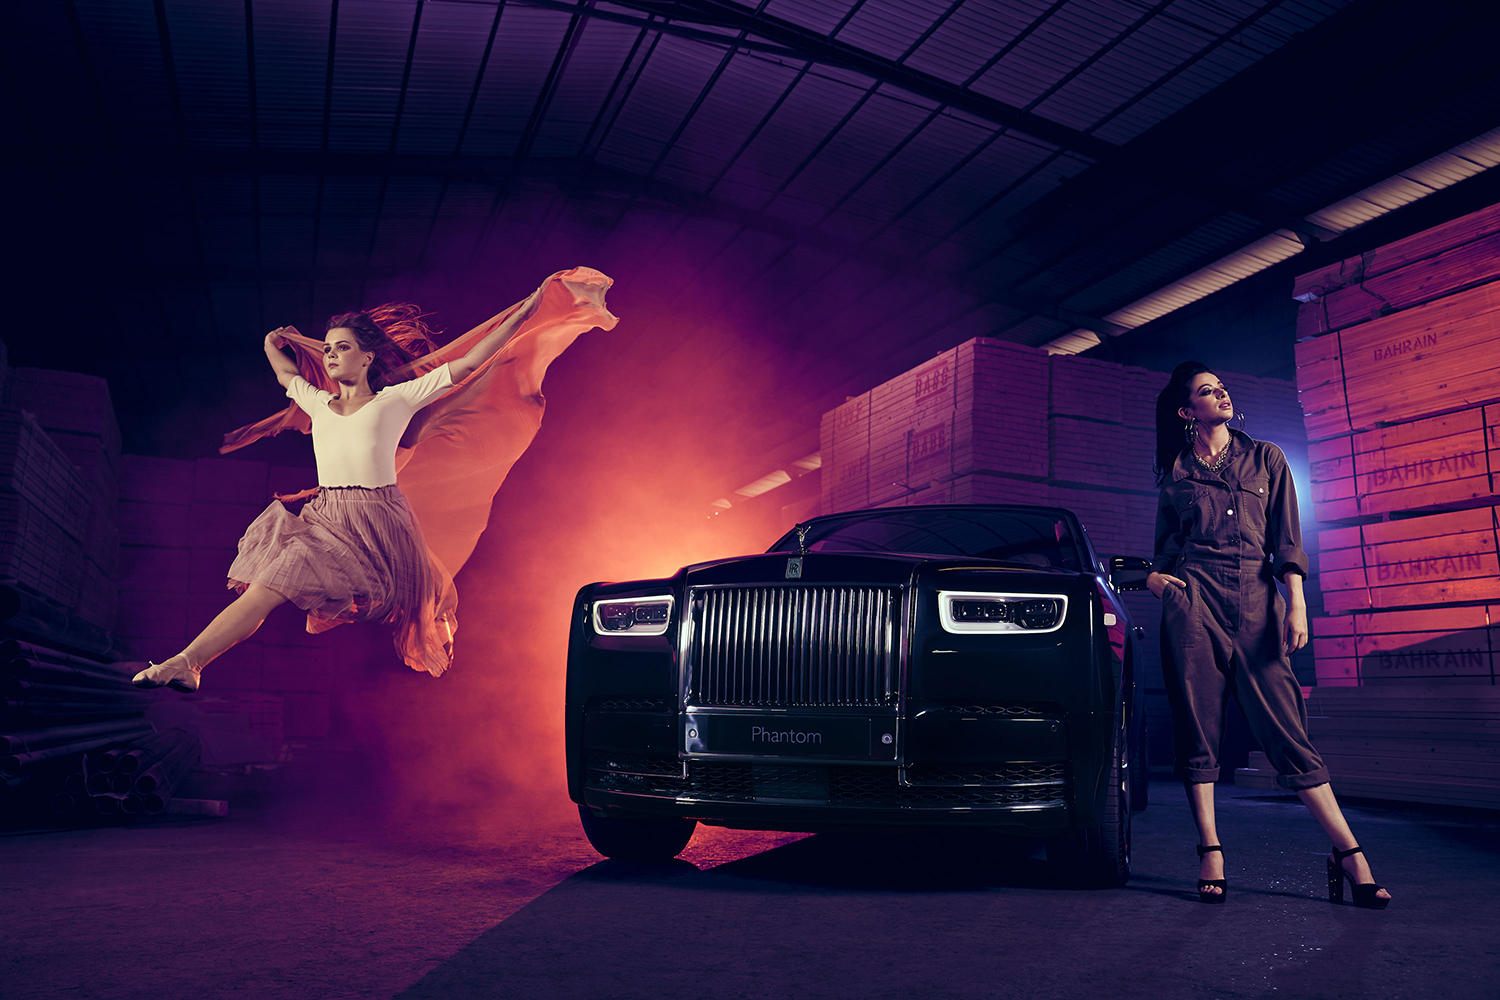 Approach_Retouch_London_RollsRoyce_Phantom_002-1